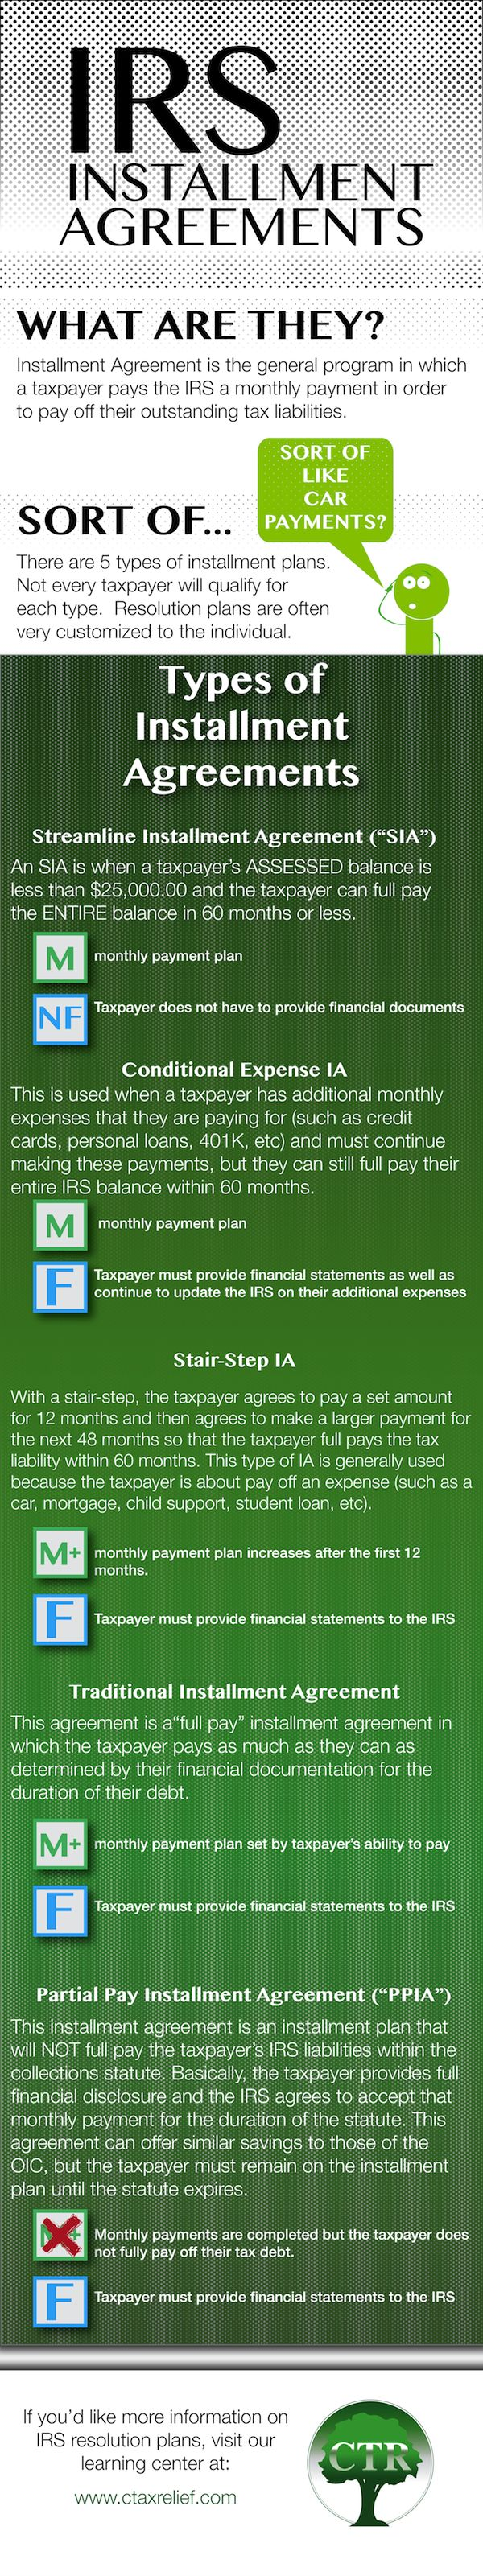 376 best tax preparation images on pinterest tax preparation irs installment agreements infographic xflitez Images